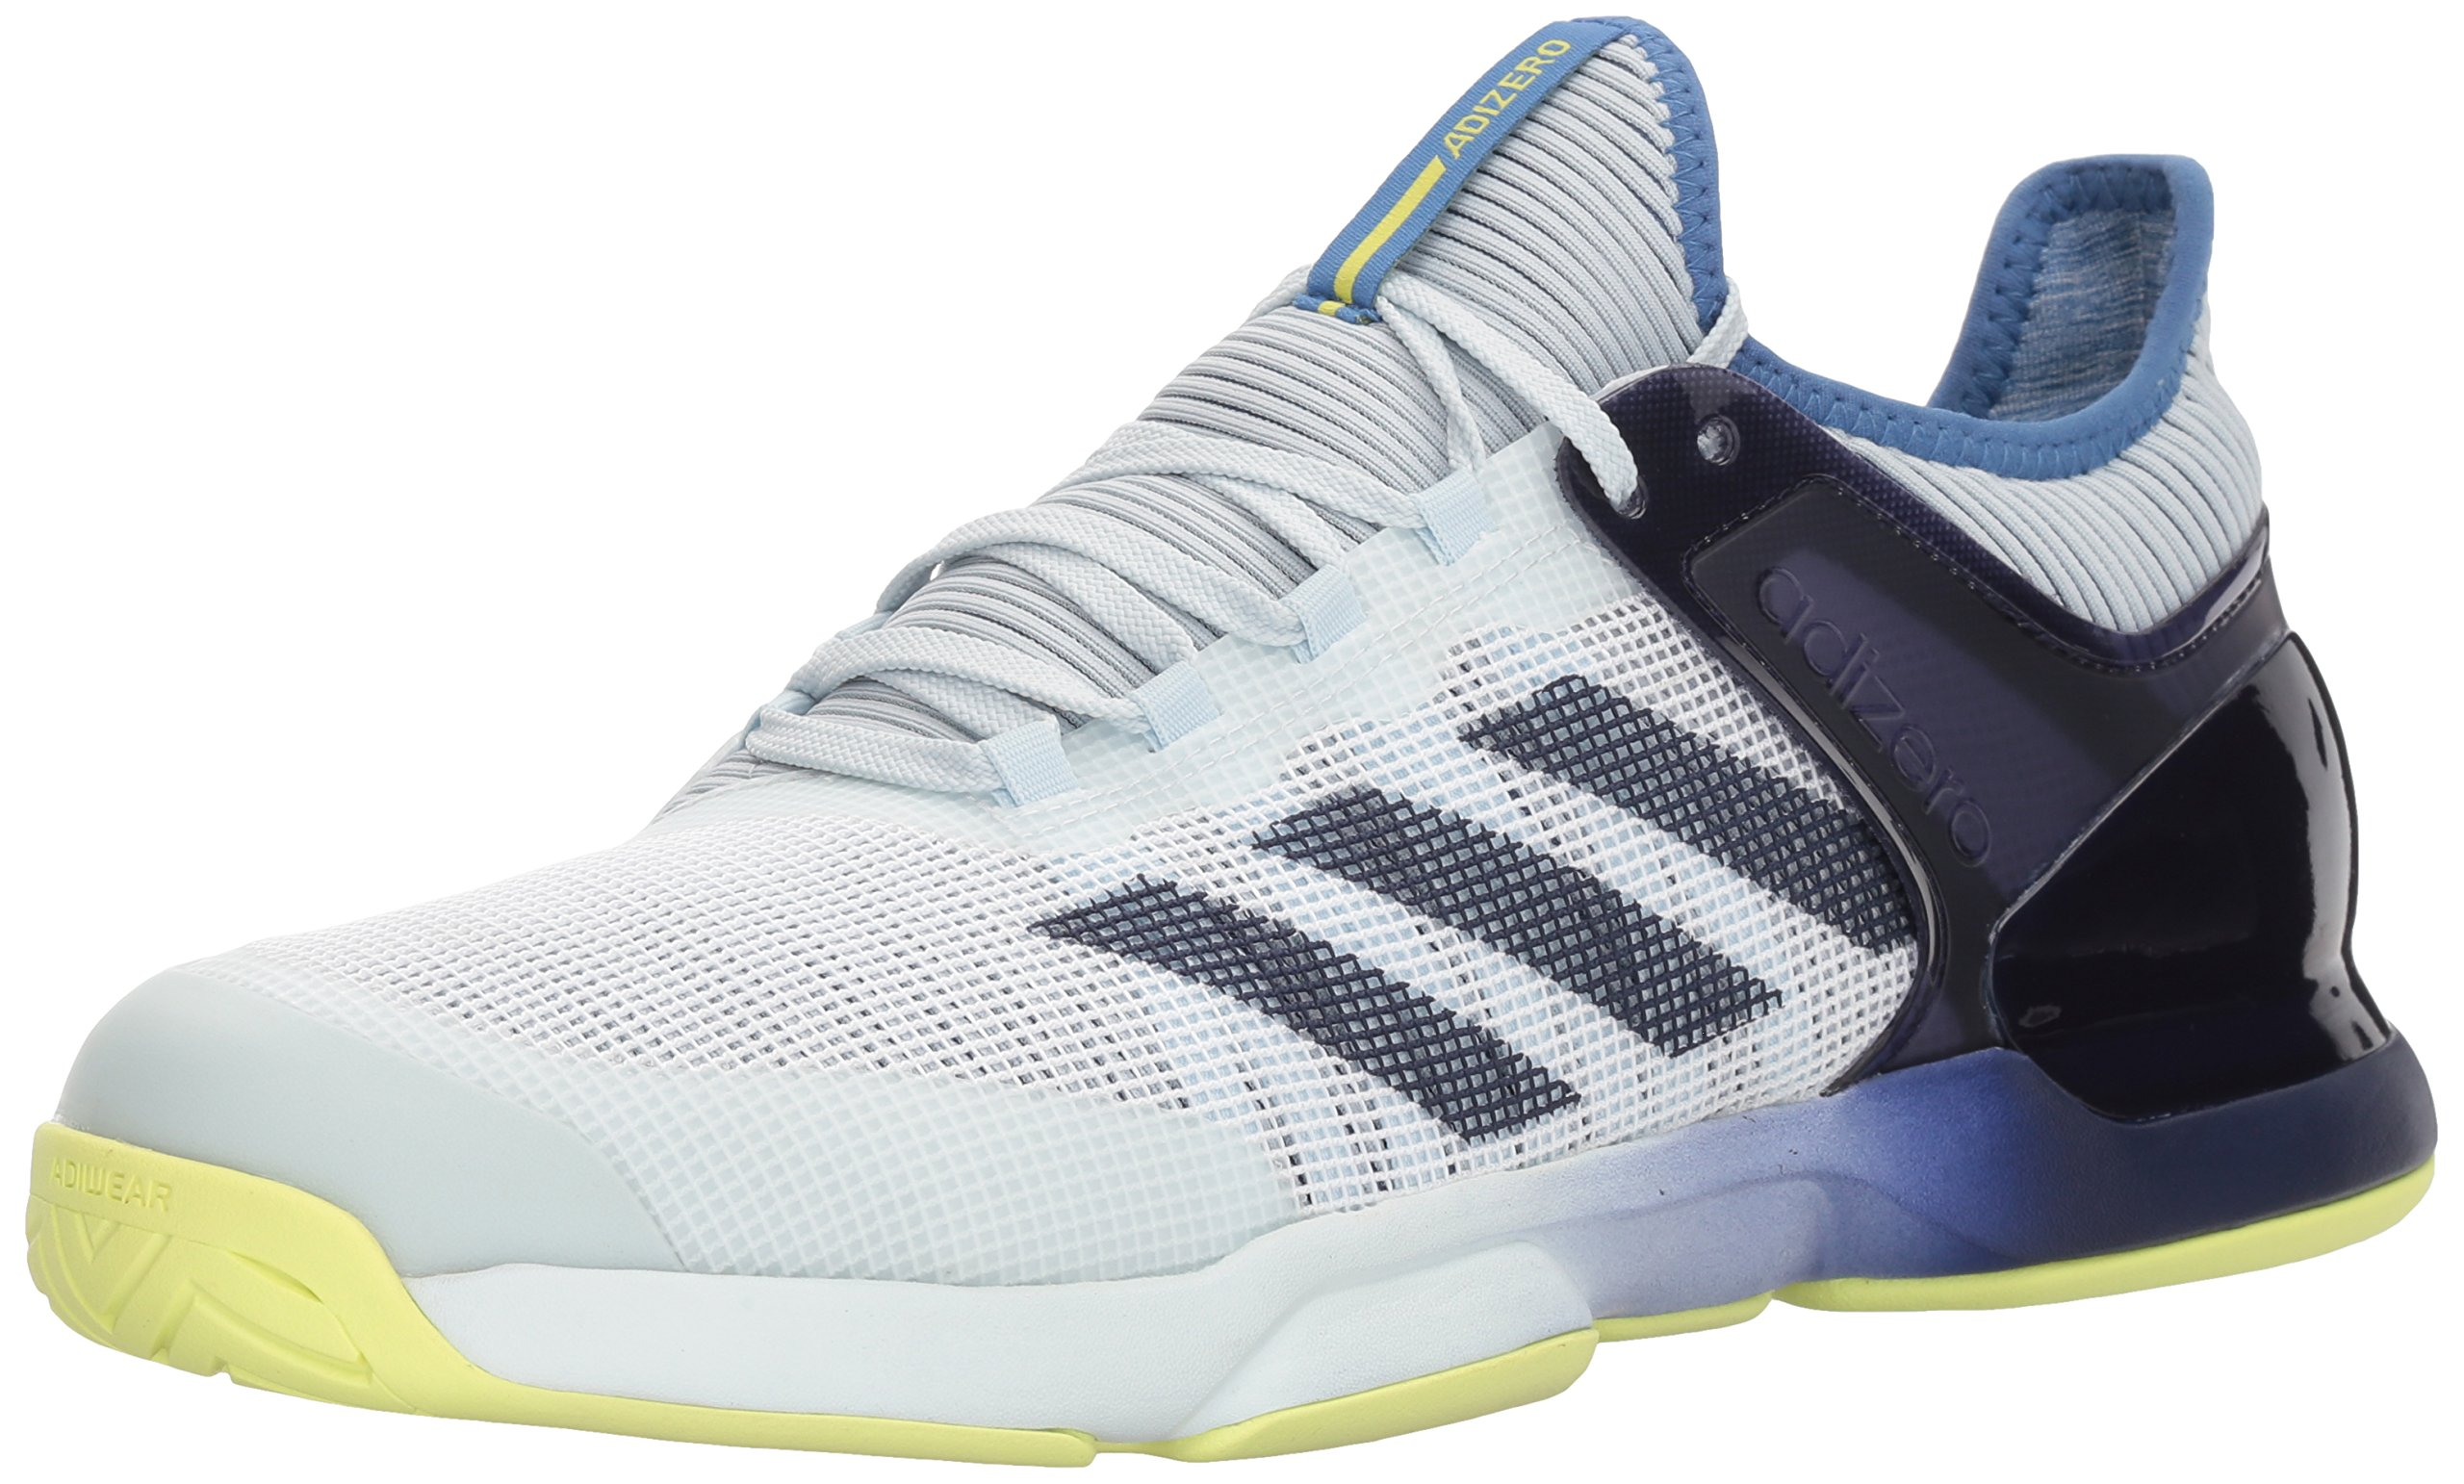 adidas Men's Adizero Ubersonic 2 Tennis Shoe, Blue Tint/Noble Ink/Semi Frozen Yellow, 10 M US by adidas